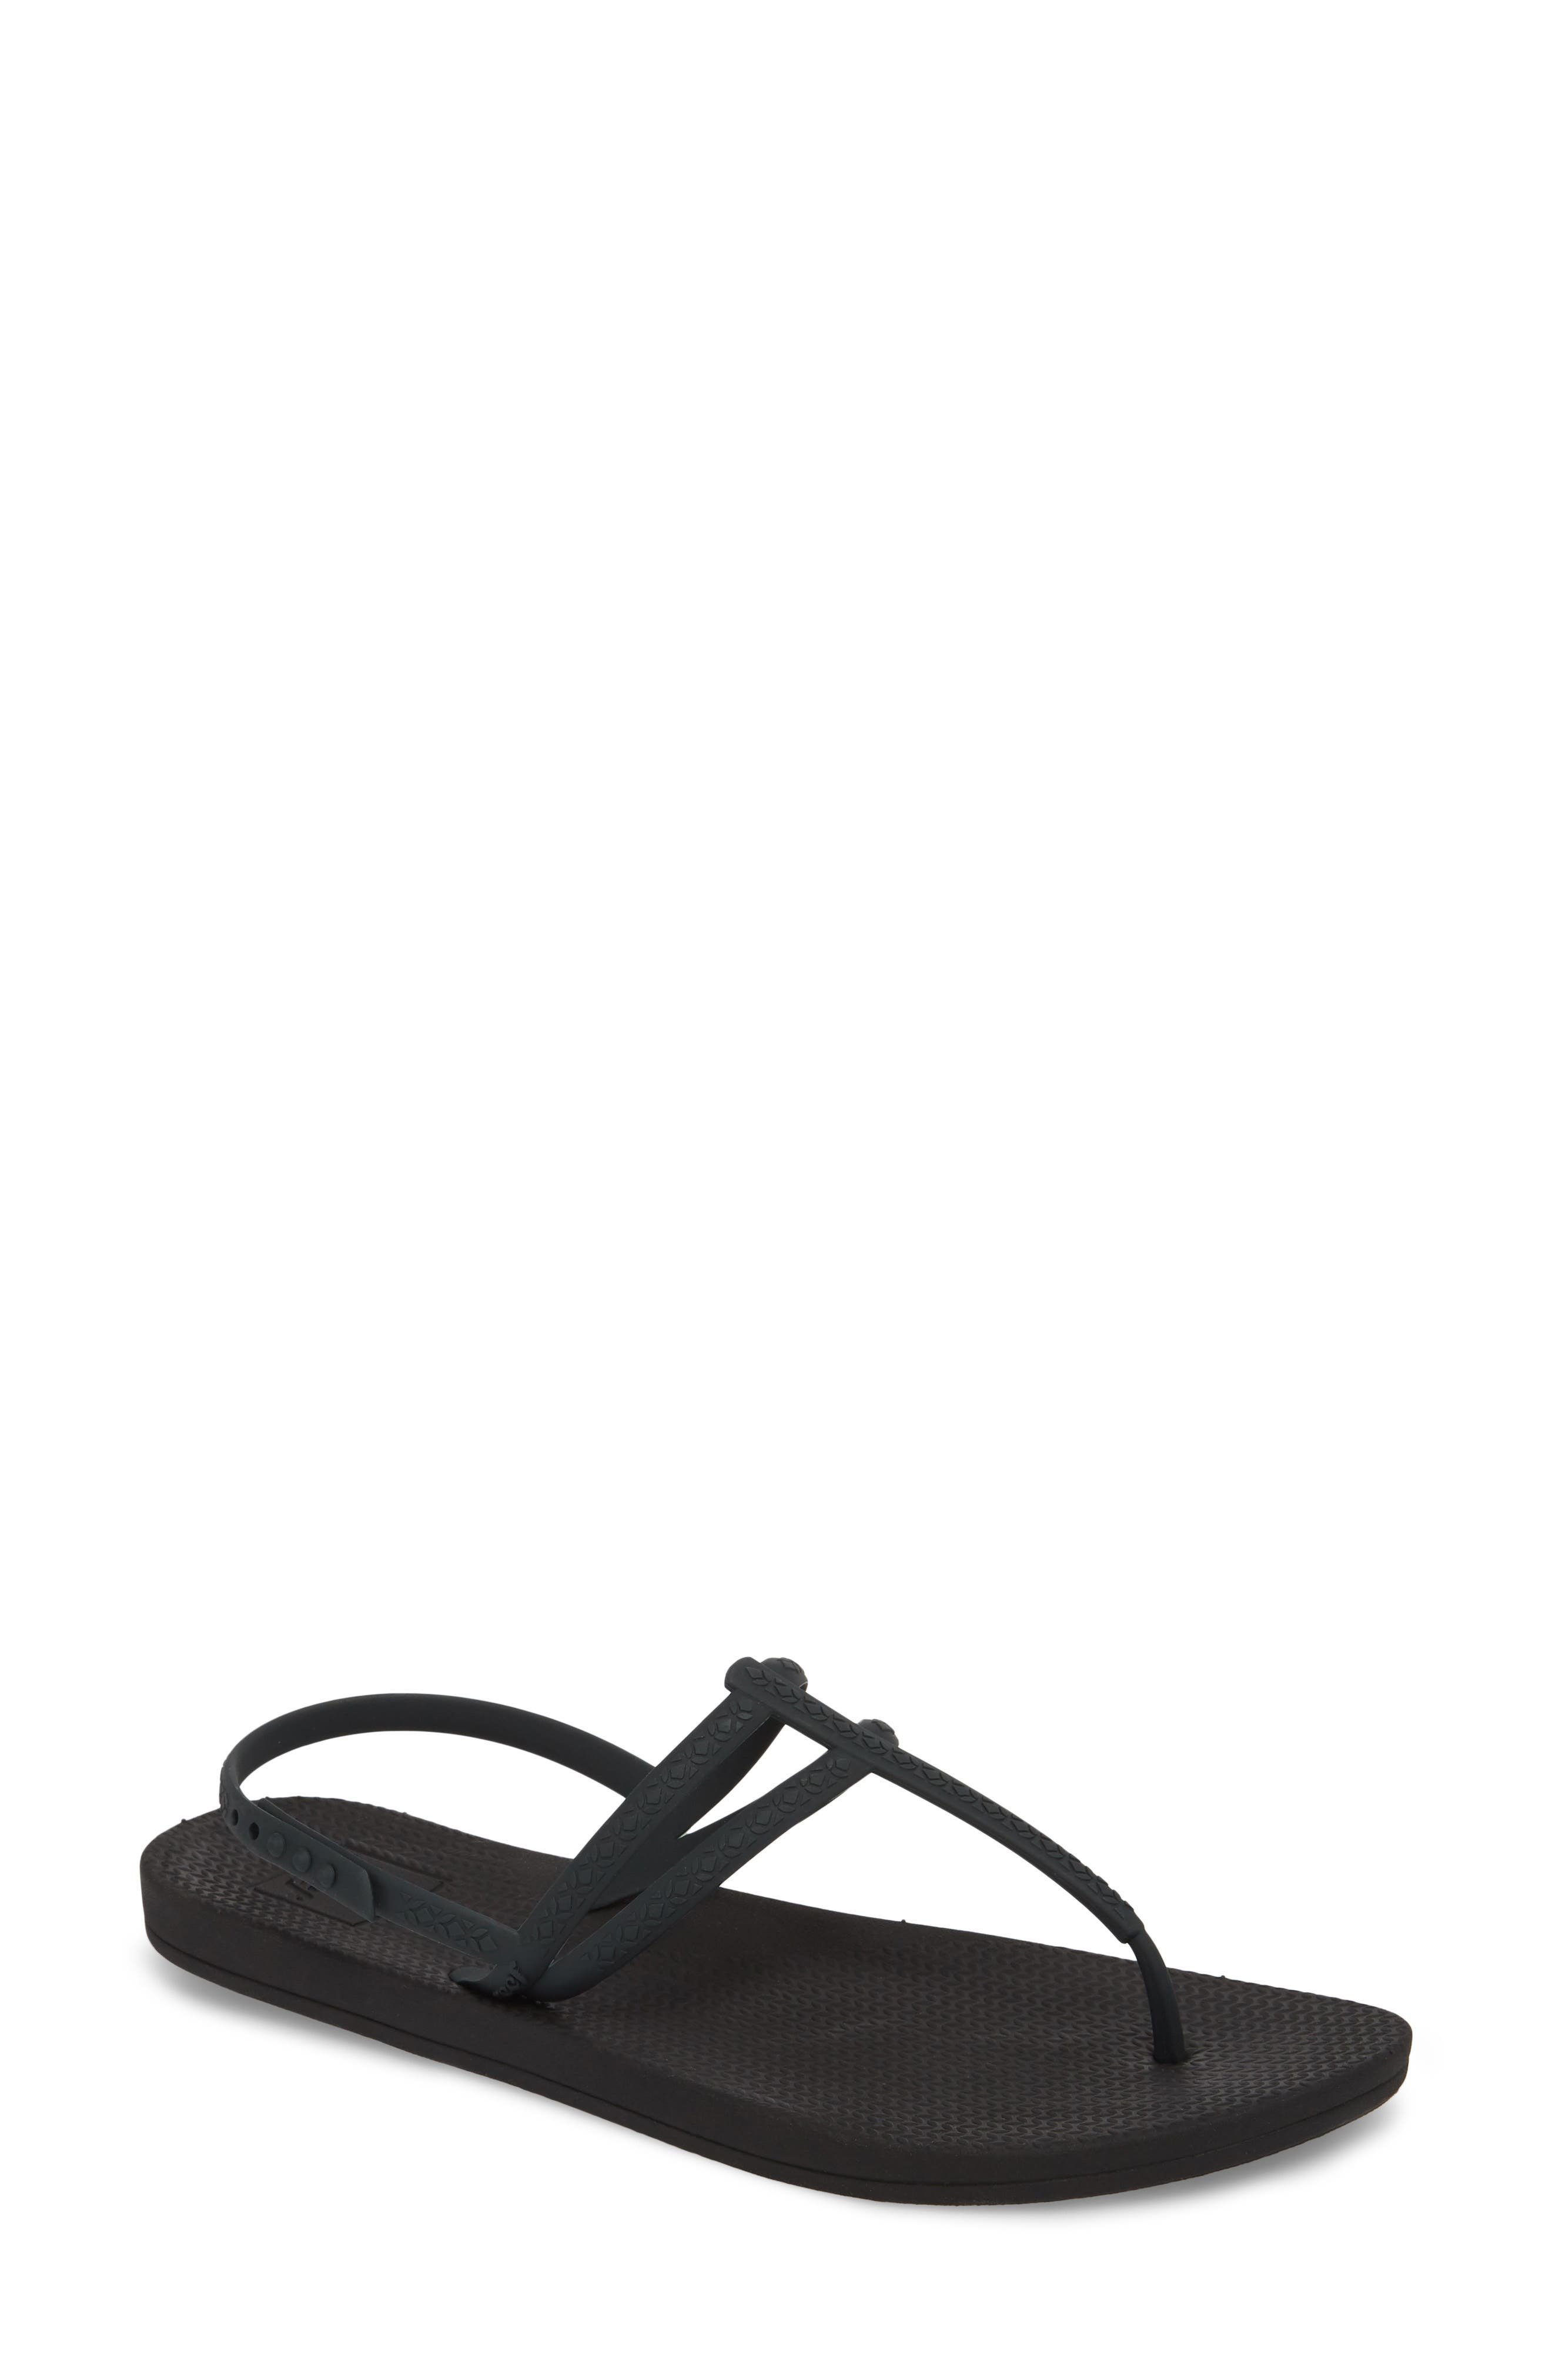 Escape Lux T-Strap Sandal,                             Main thumbnail 1, color,                             Black